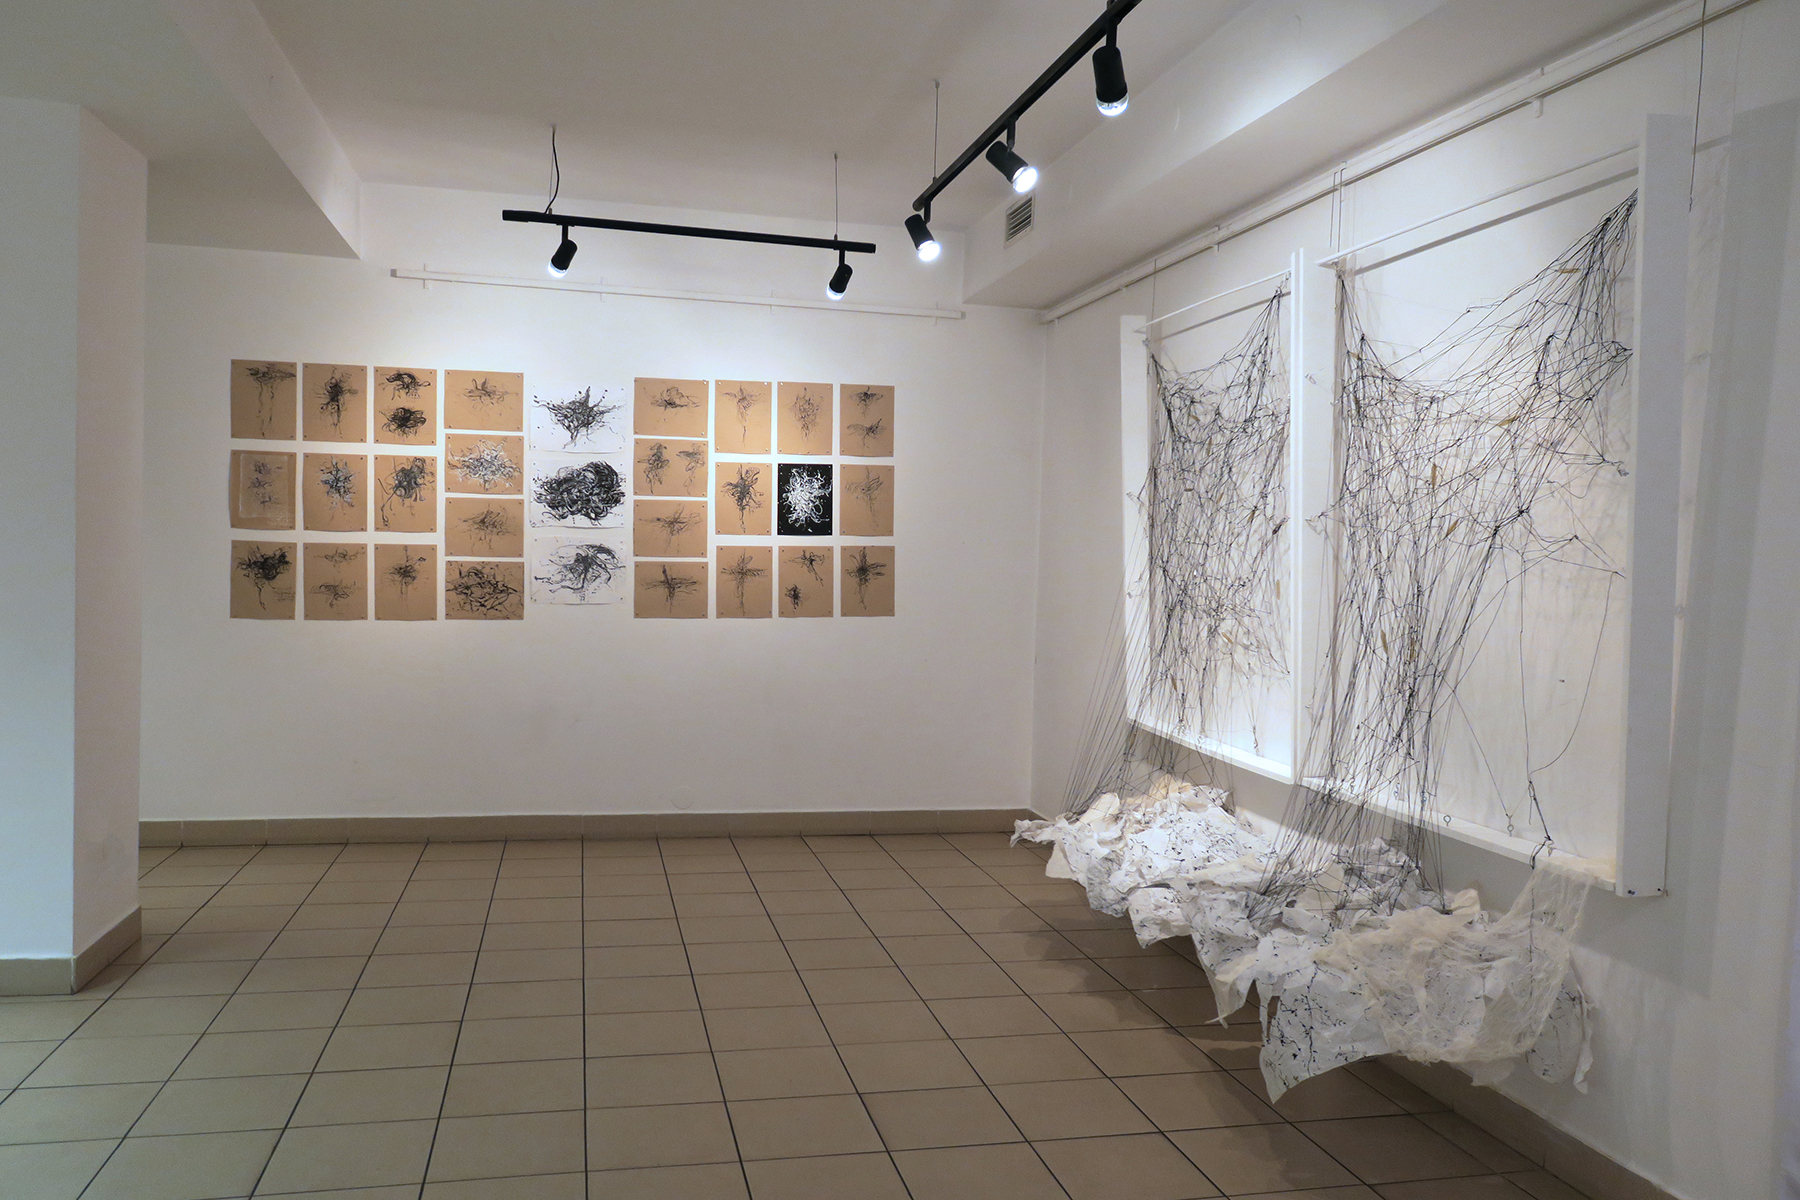 Kathryn Hart, Daunting Transitions Solo Show, Krakow 2018